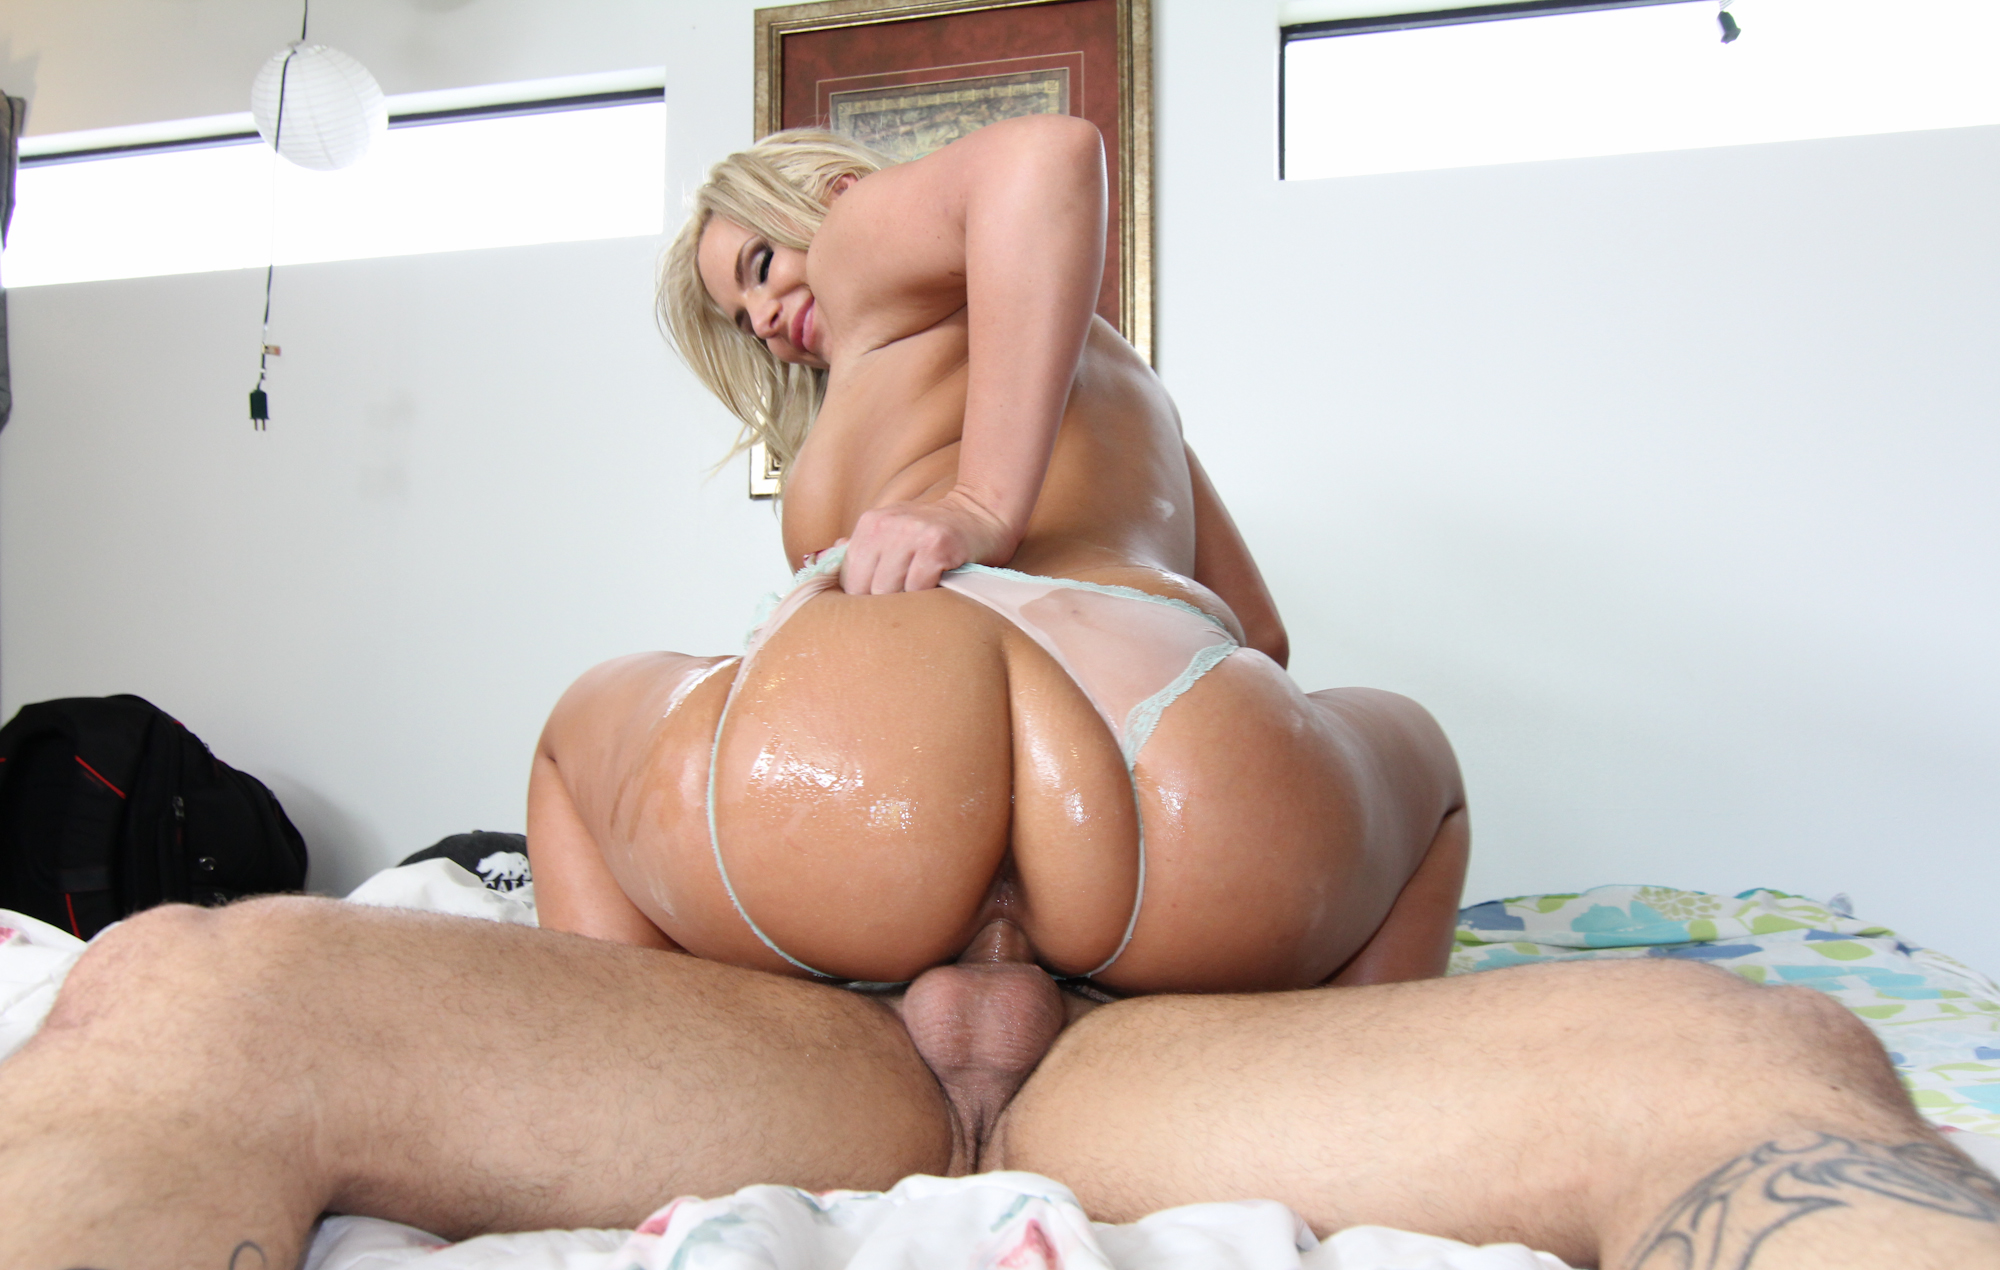 Phoenix Marie big ass gets some dick – Openload Free